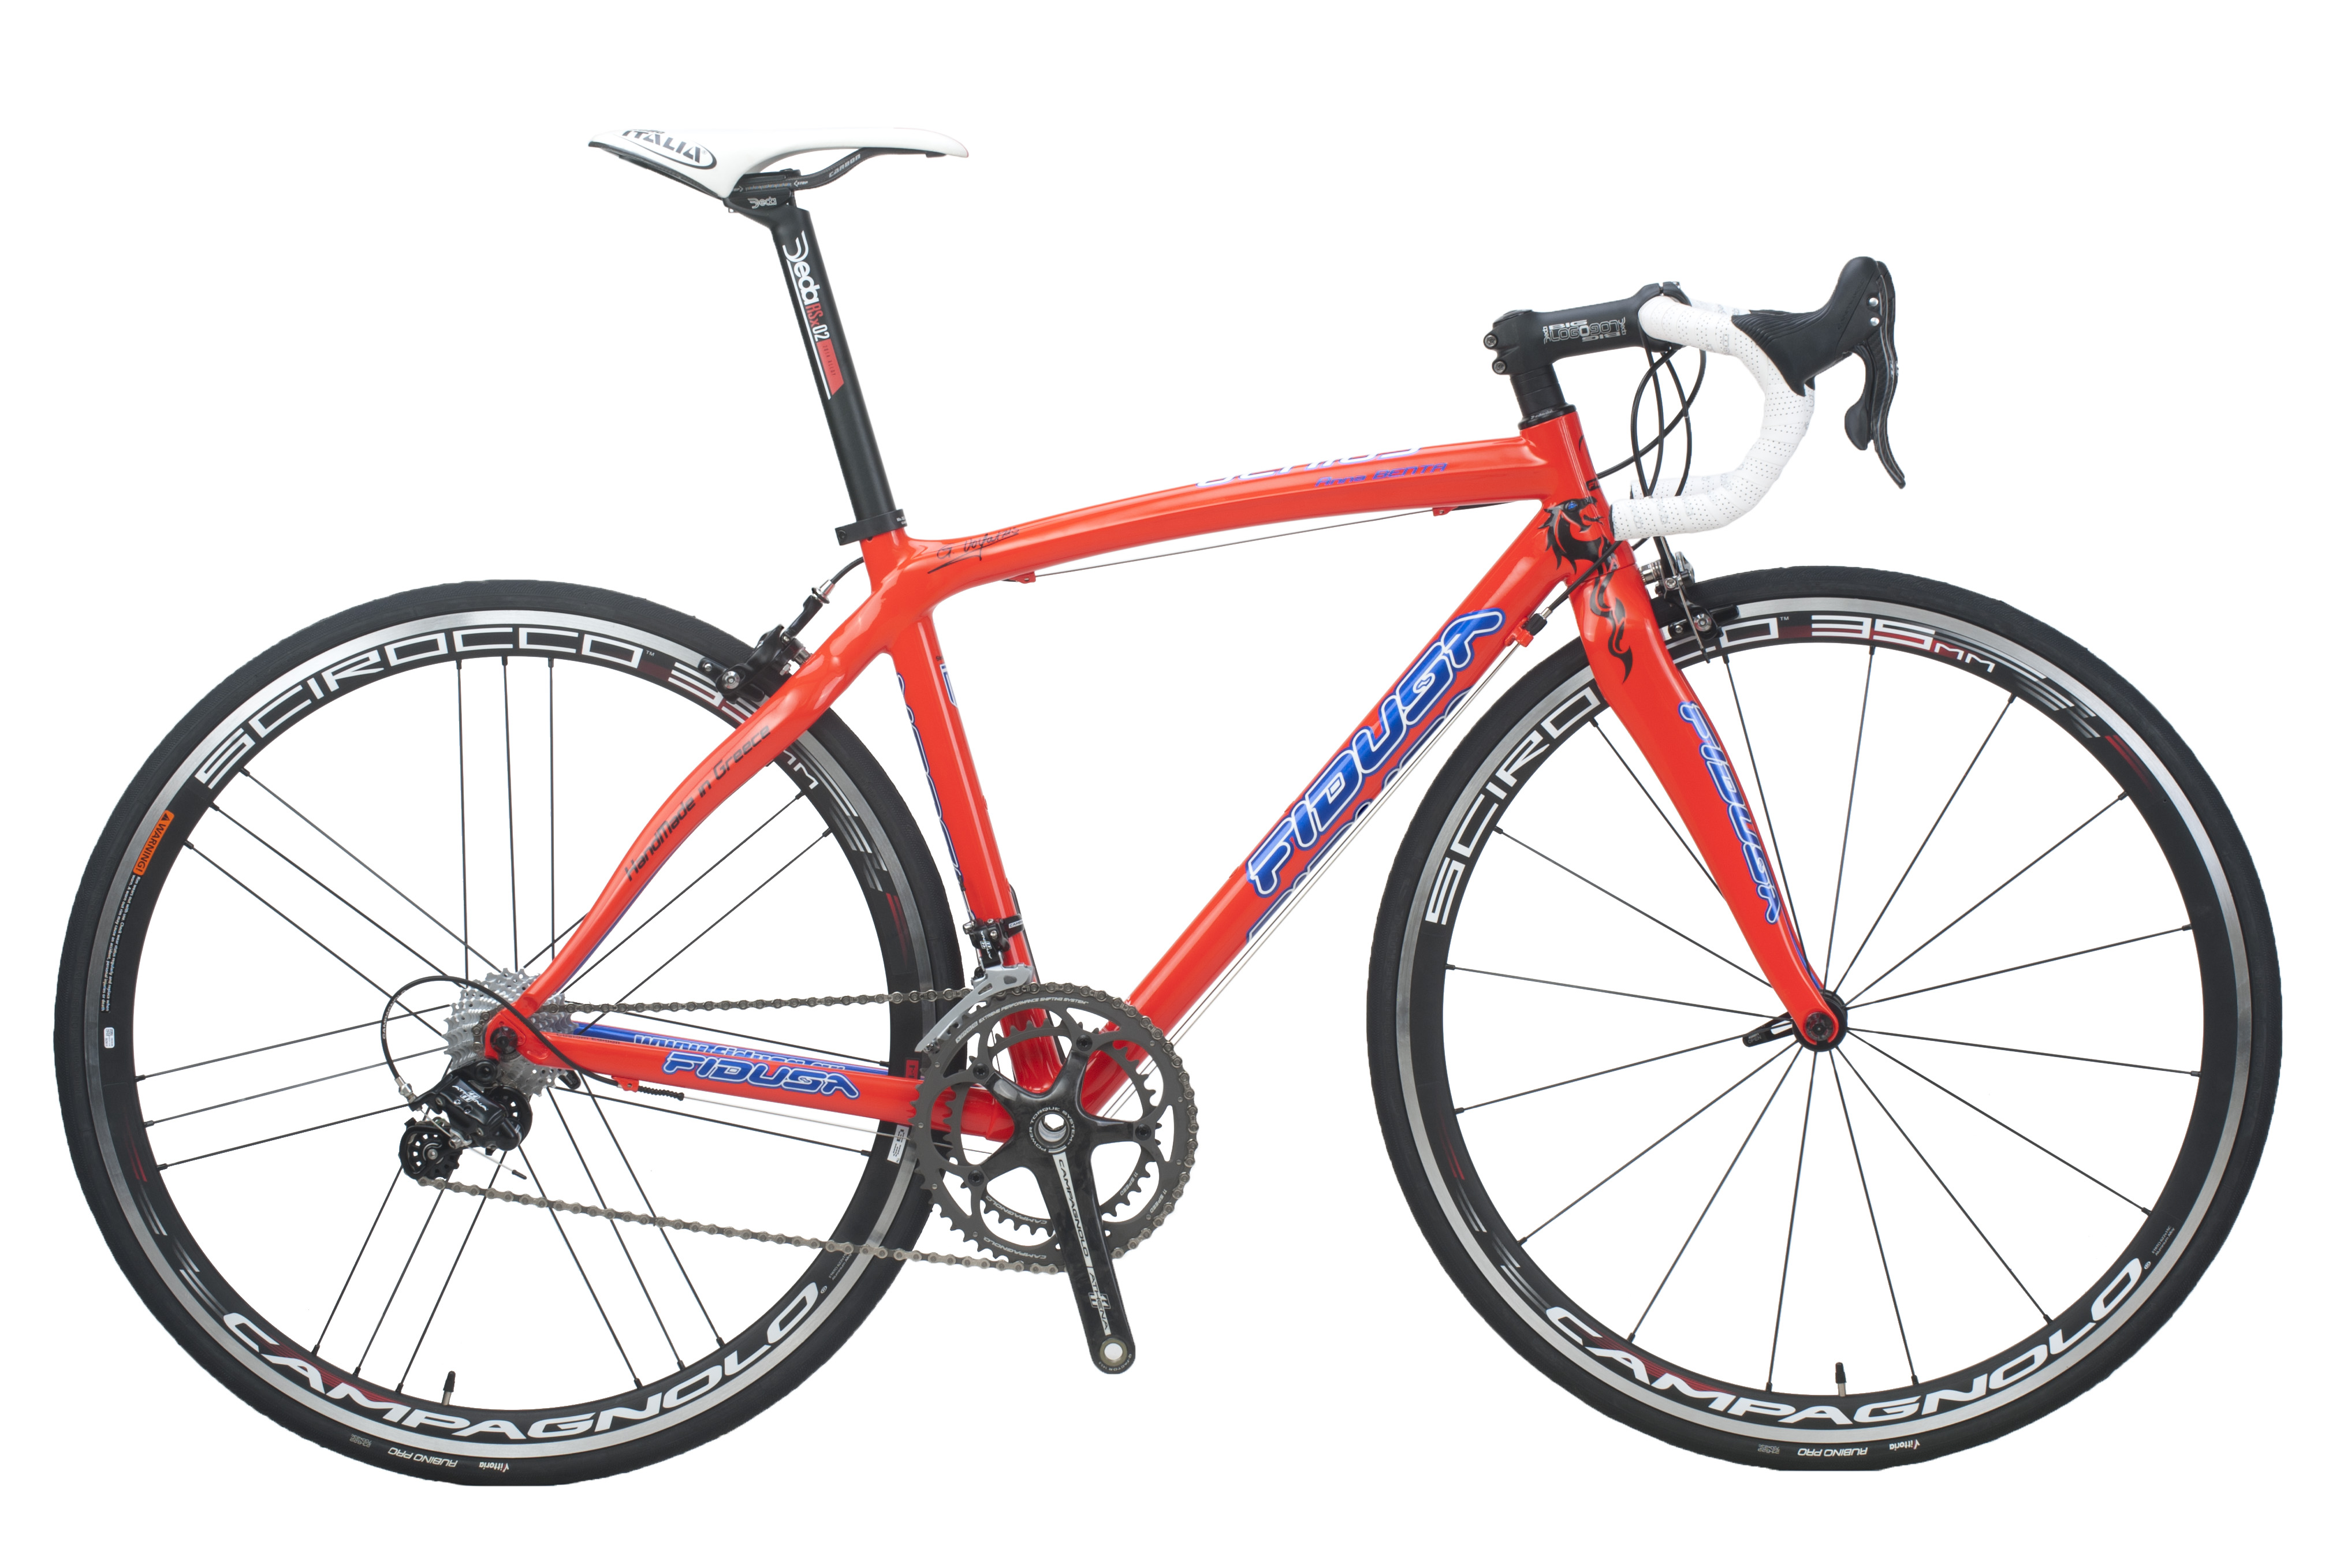 GENIUS-MPENTA-ANNA-BIKE-LAND-clear Anna's Road Race Bike